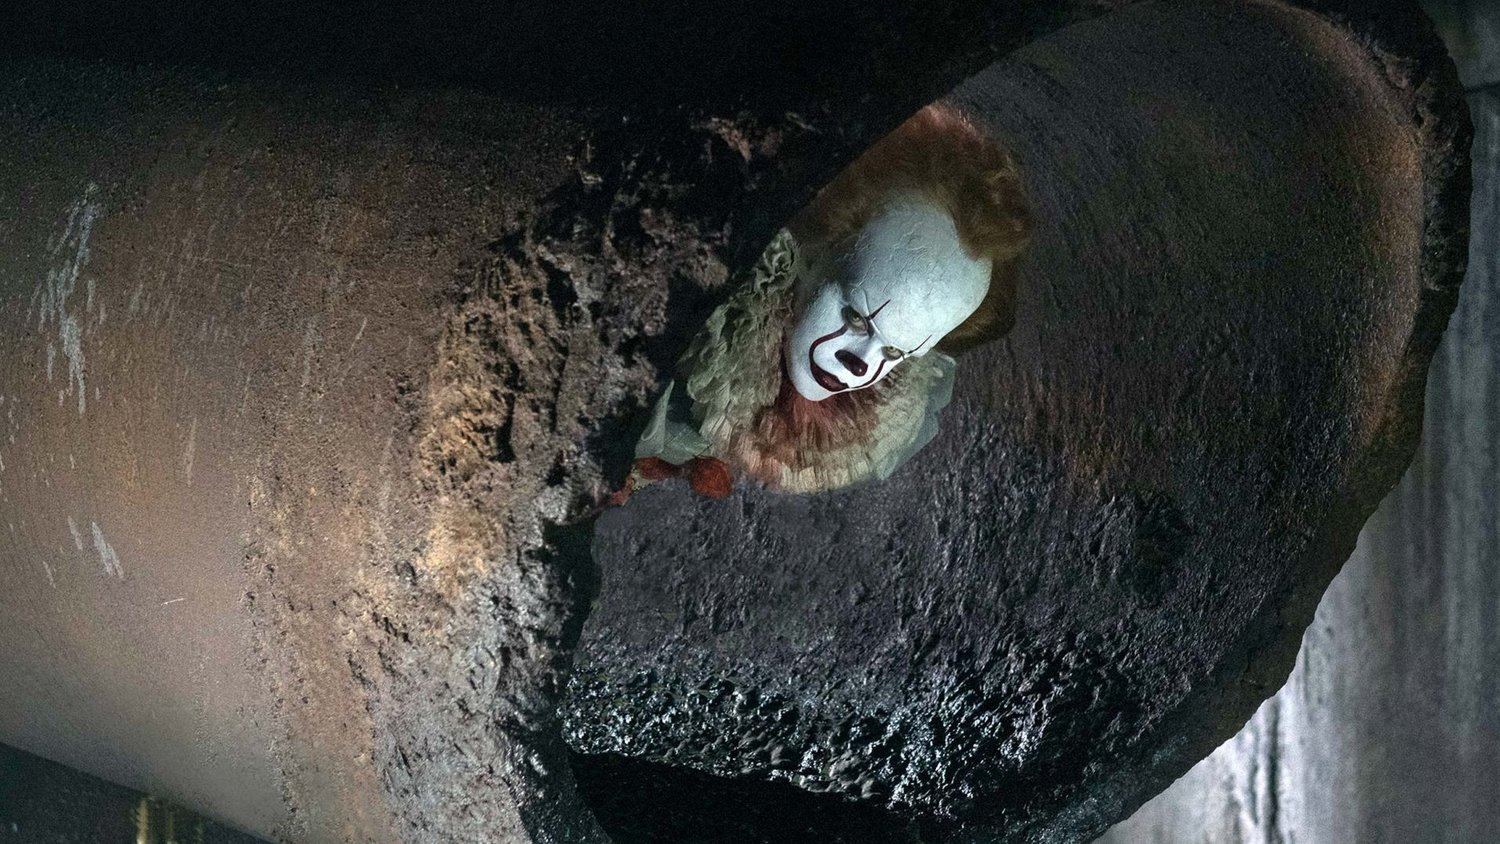 Professional Clowns Are Furious Over the Film Adaptation of Stephen King's IT